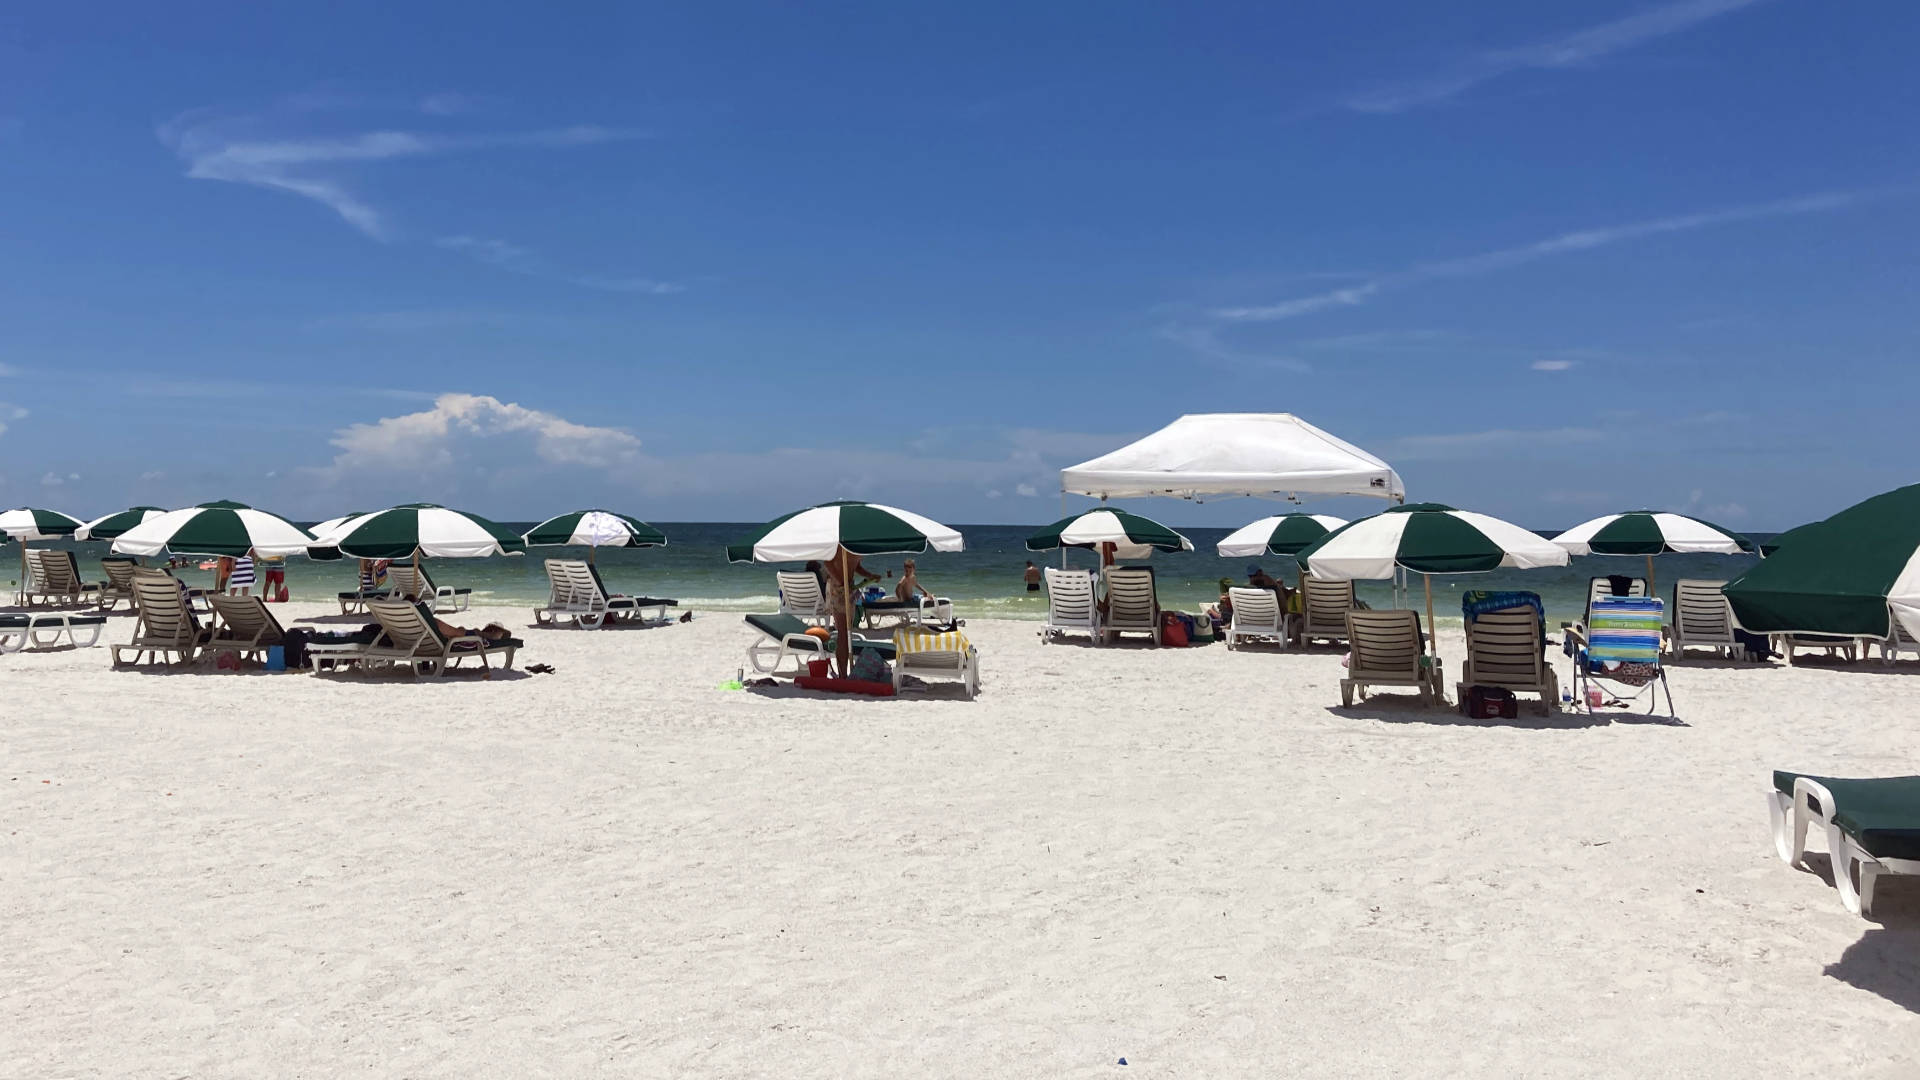 The view of the horizon from Marco Island Beach.